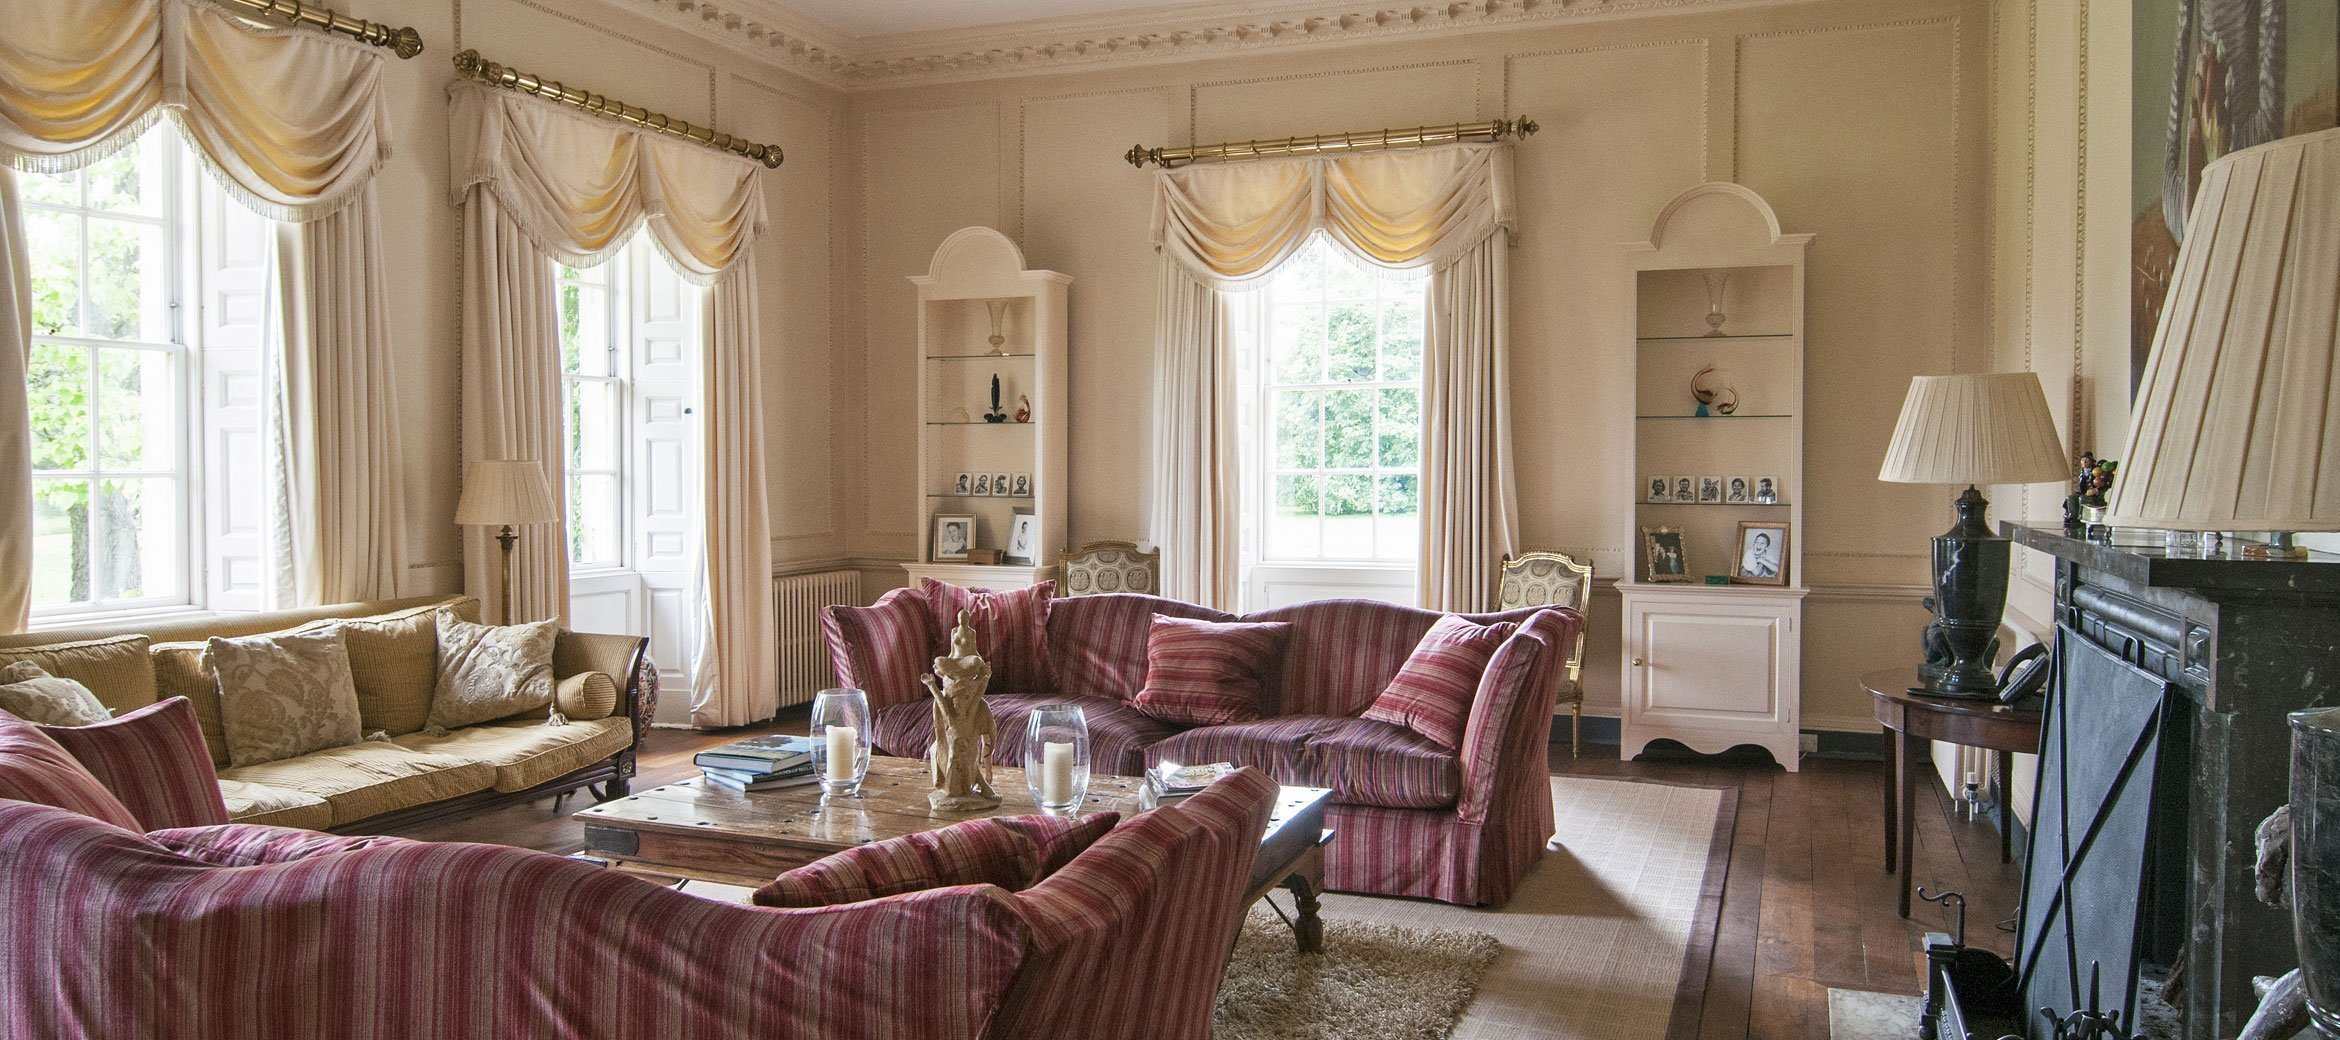 Langley park luxury cotswold rentals luxury cotswold rentals Home furniture and more in langley park